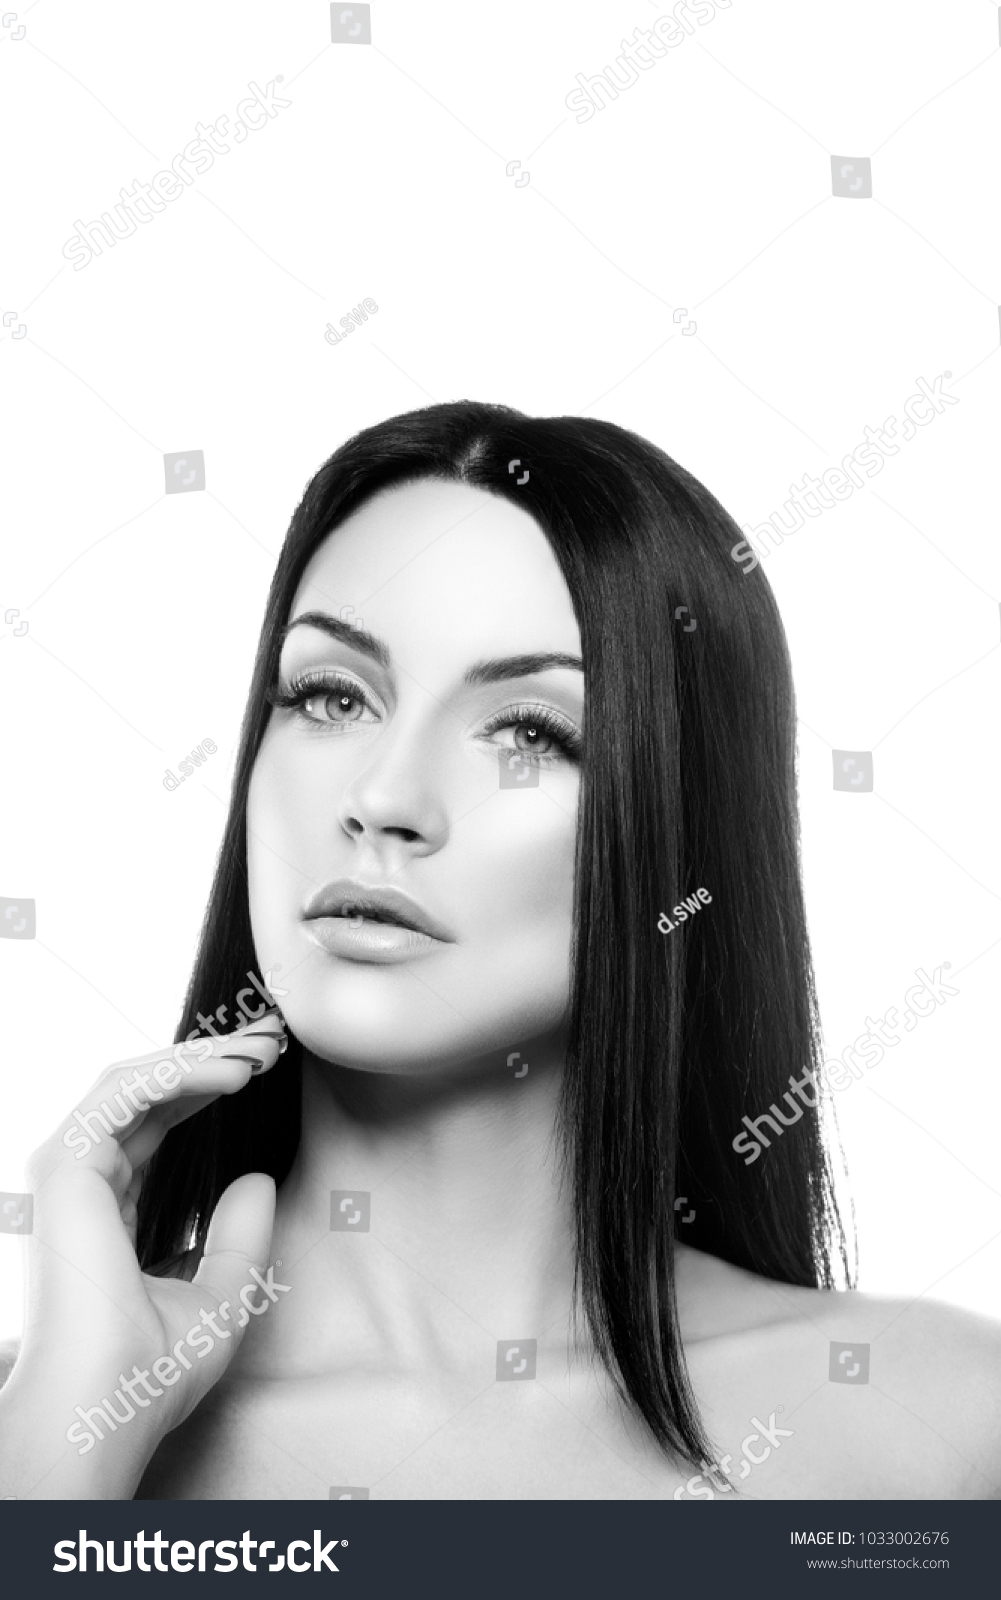 Beautiful portraitof young girl with natural lips, nude makeup and clean  skin over white background